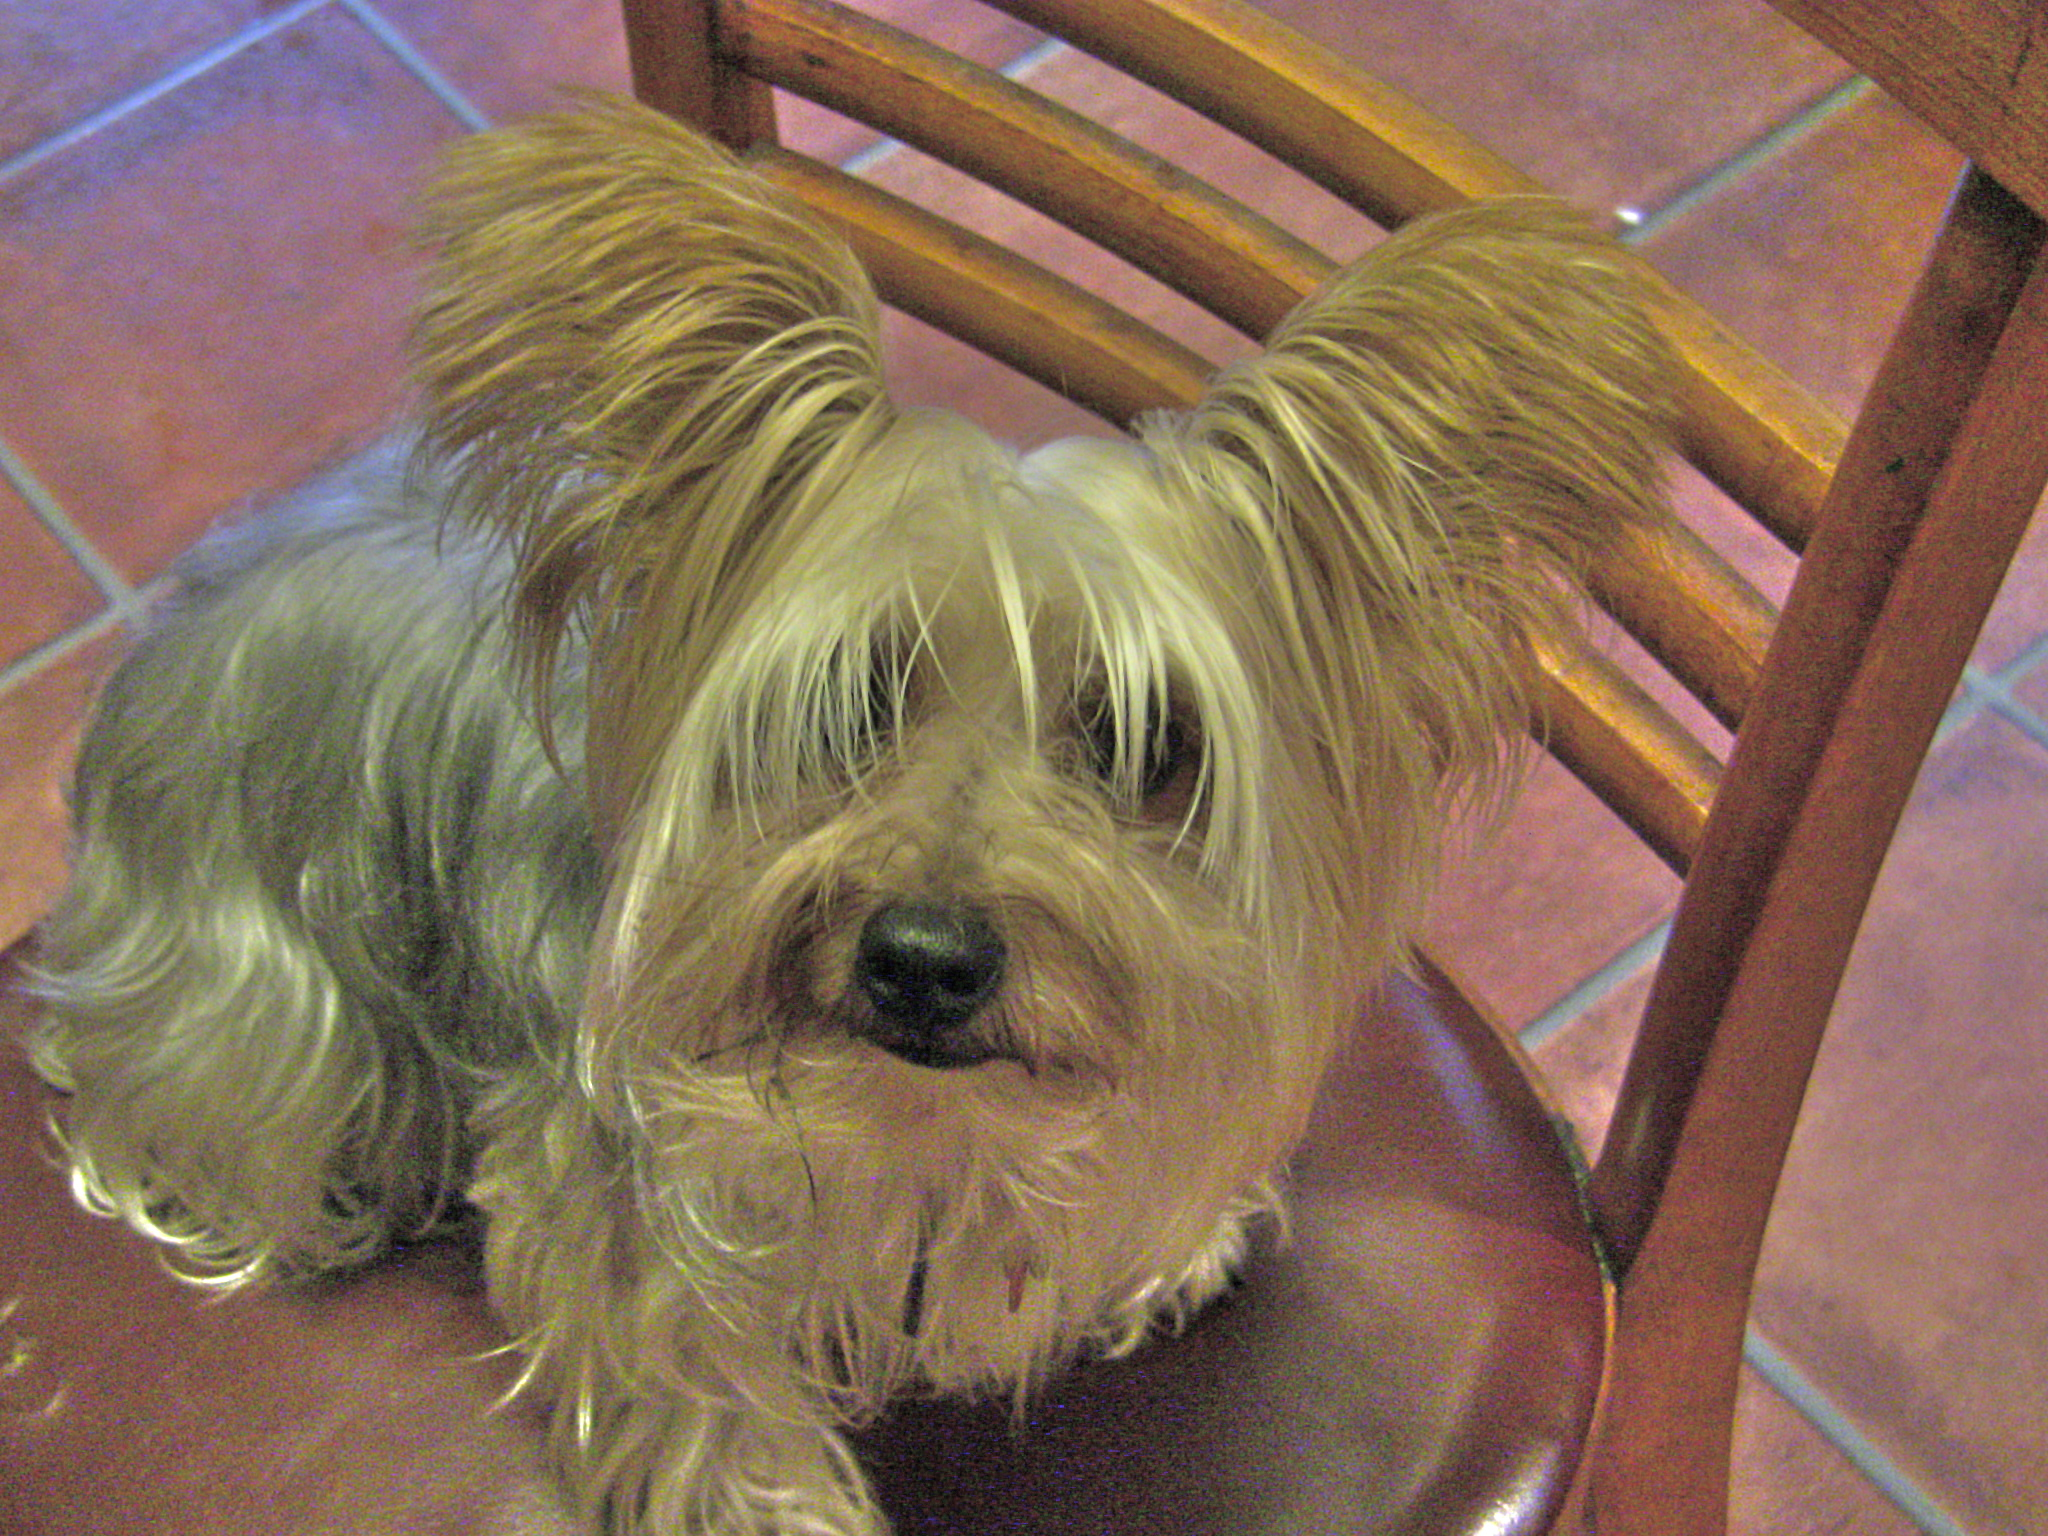 Yorkie Haircut Pictures http://tiffy40.wordpress.com/tag/yorkie-hairstyles/